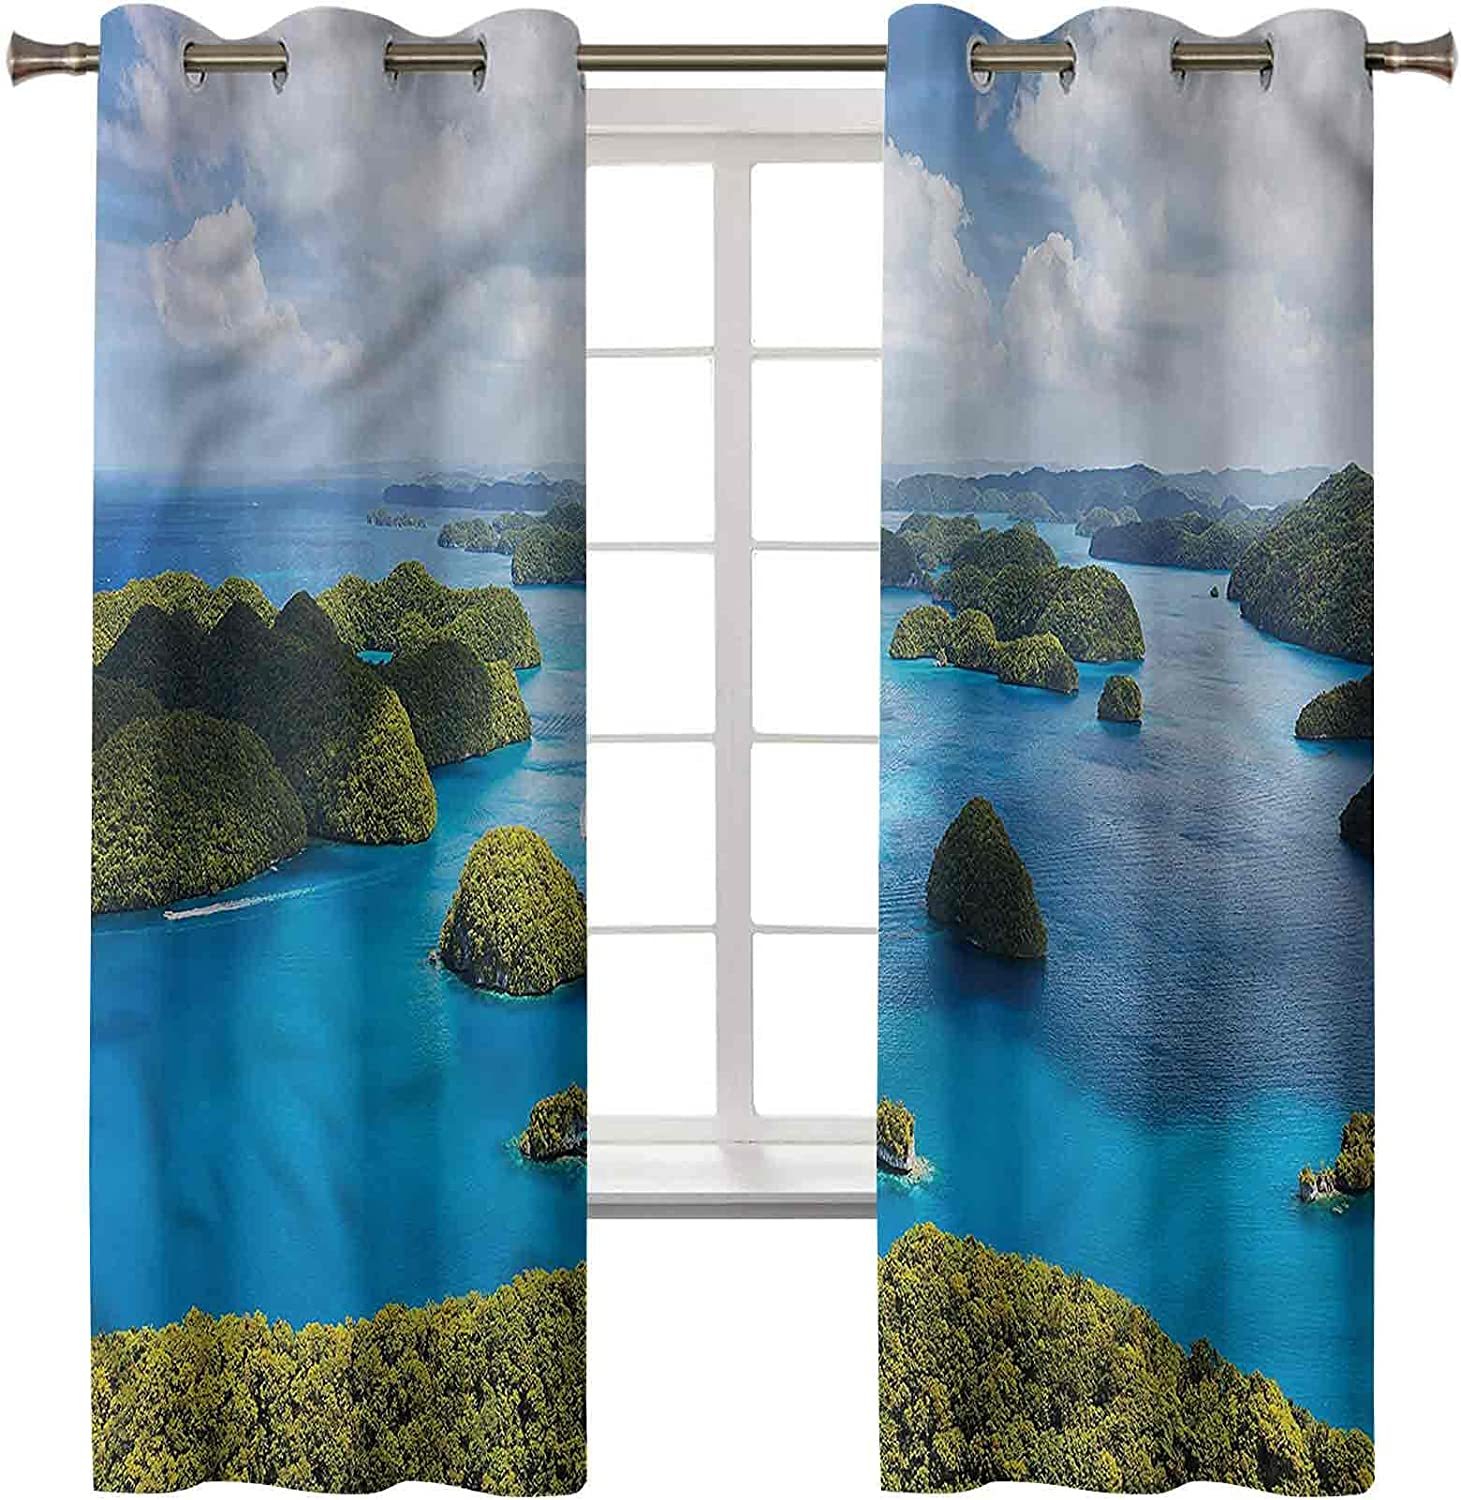 Max 70% OFF Island Charlotte Mall Blackout Curtains for Bedroom Set 45L x 2 Panels of 38W